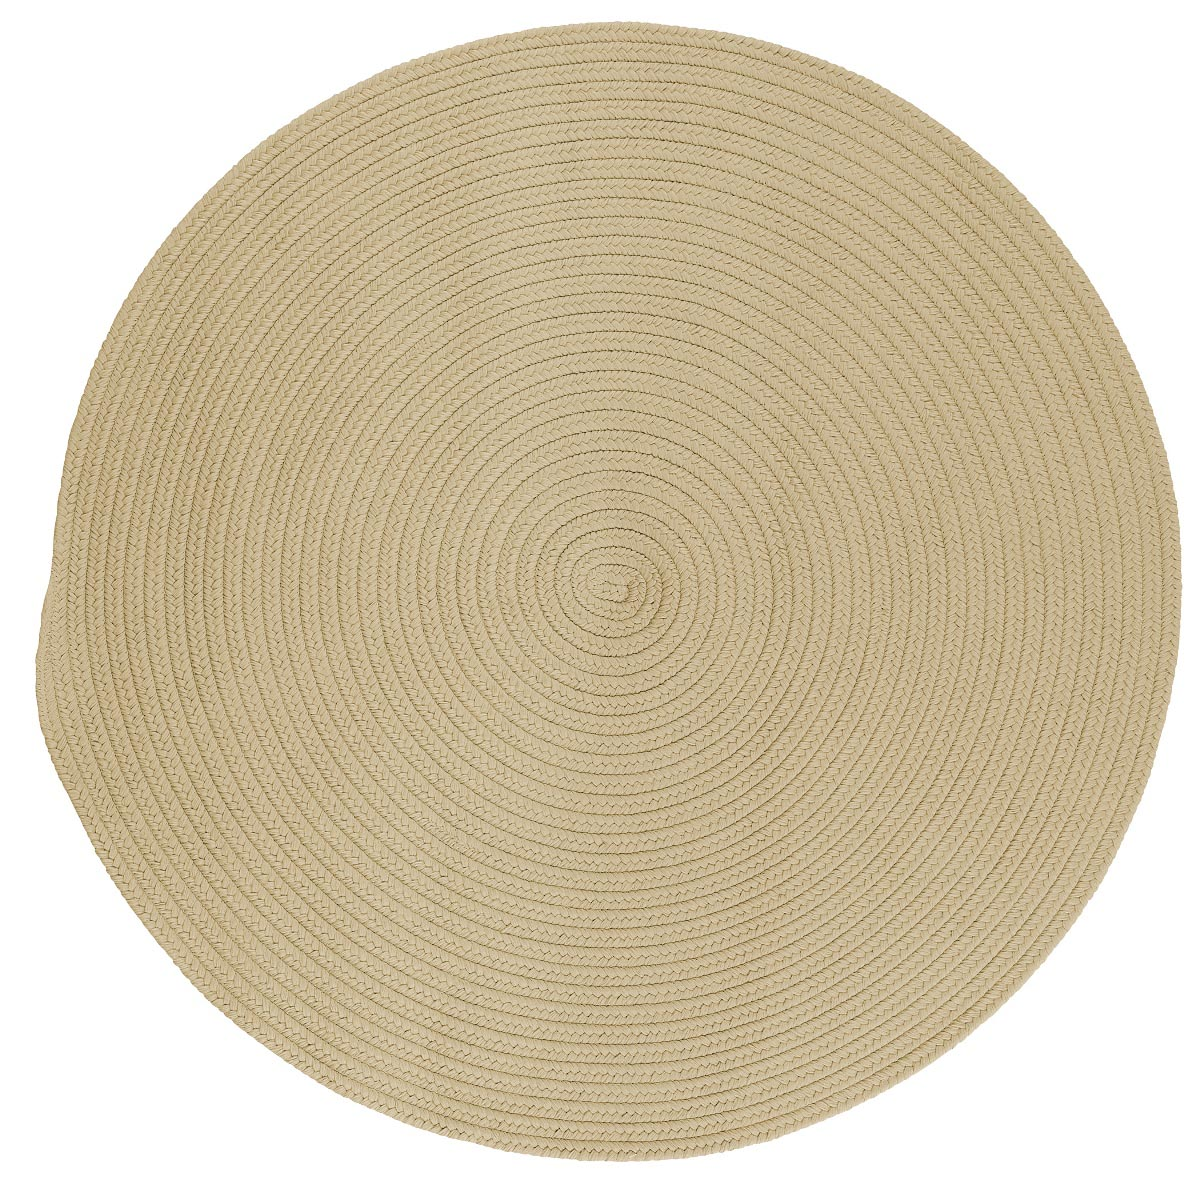 Boca Raton Linen Outdoor Braided Round Rugs